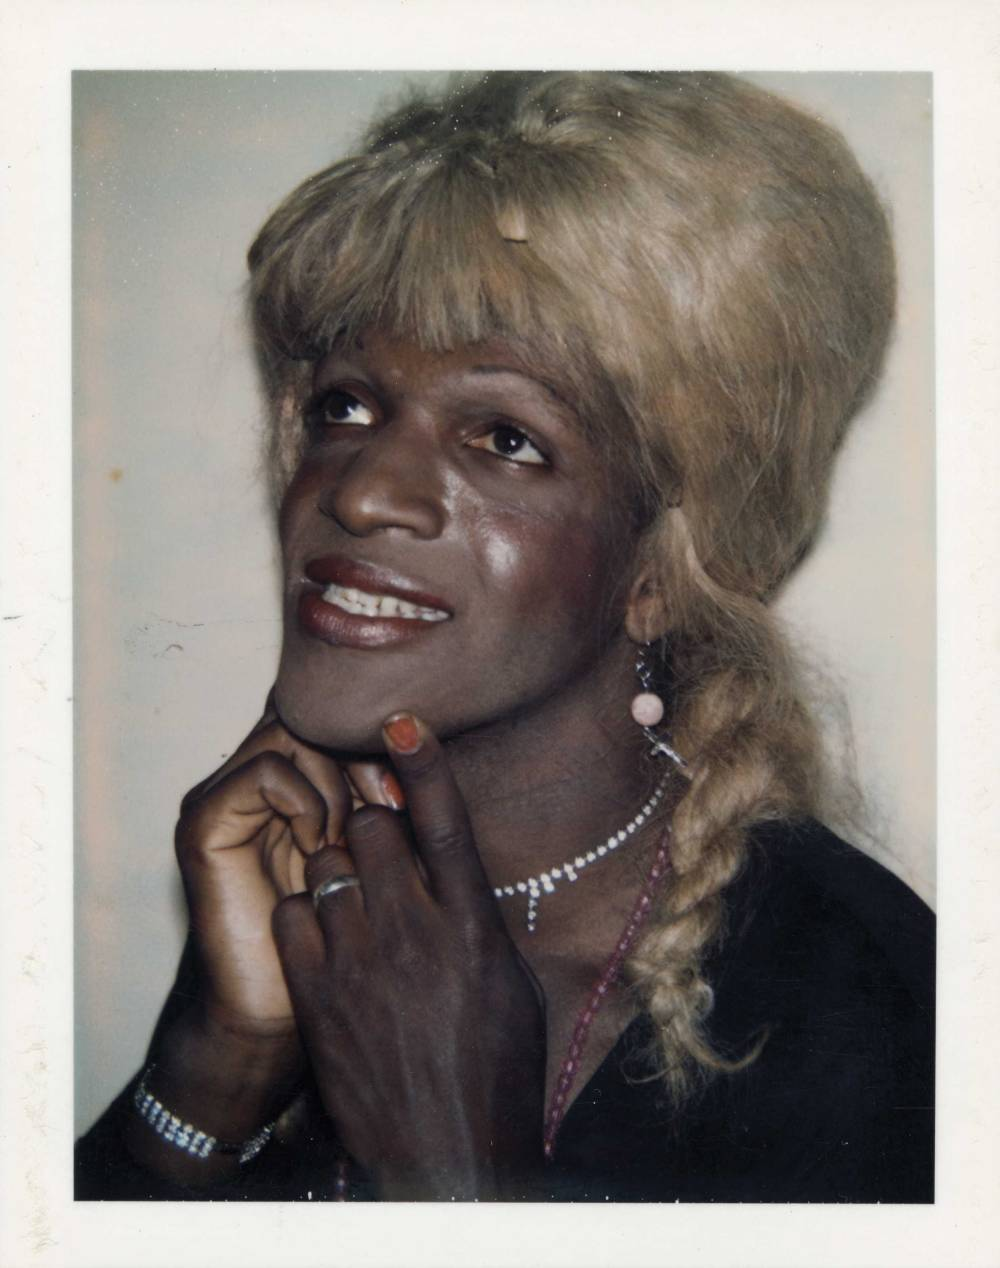 Andy Warhol, Polaroid of Marsha P. Johnson